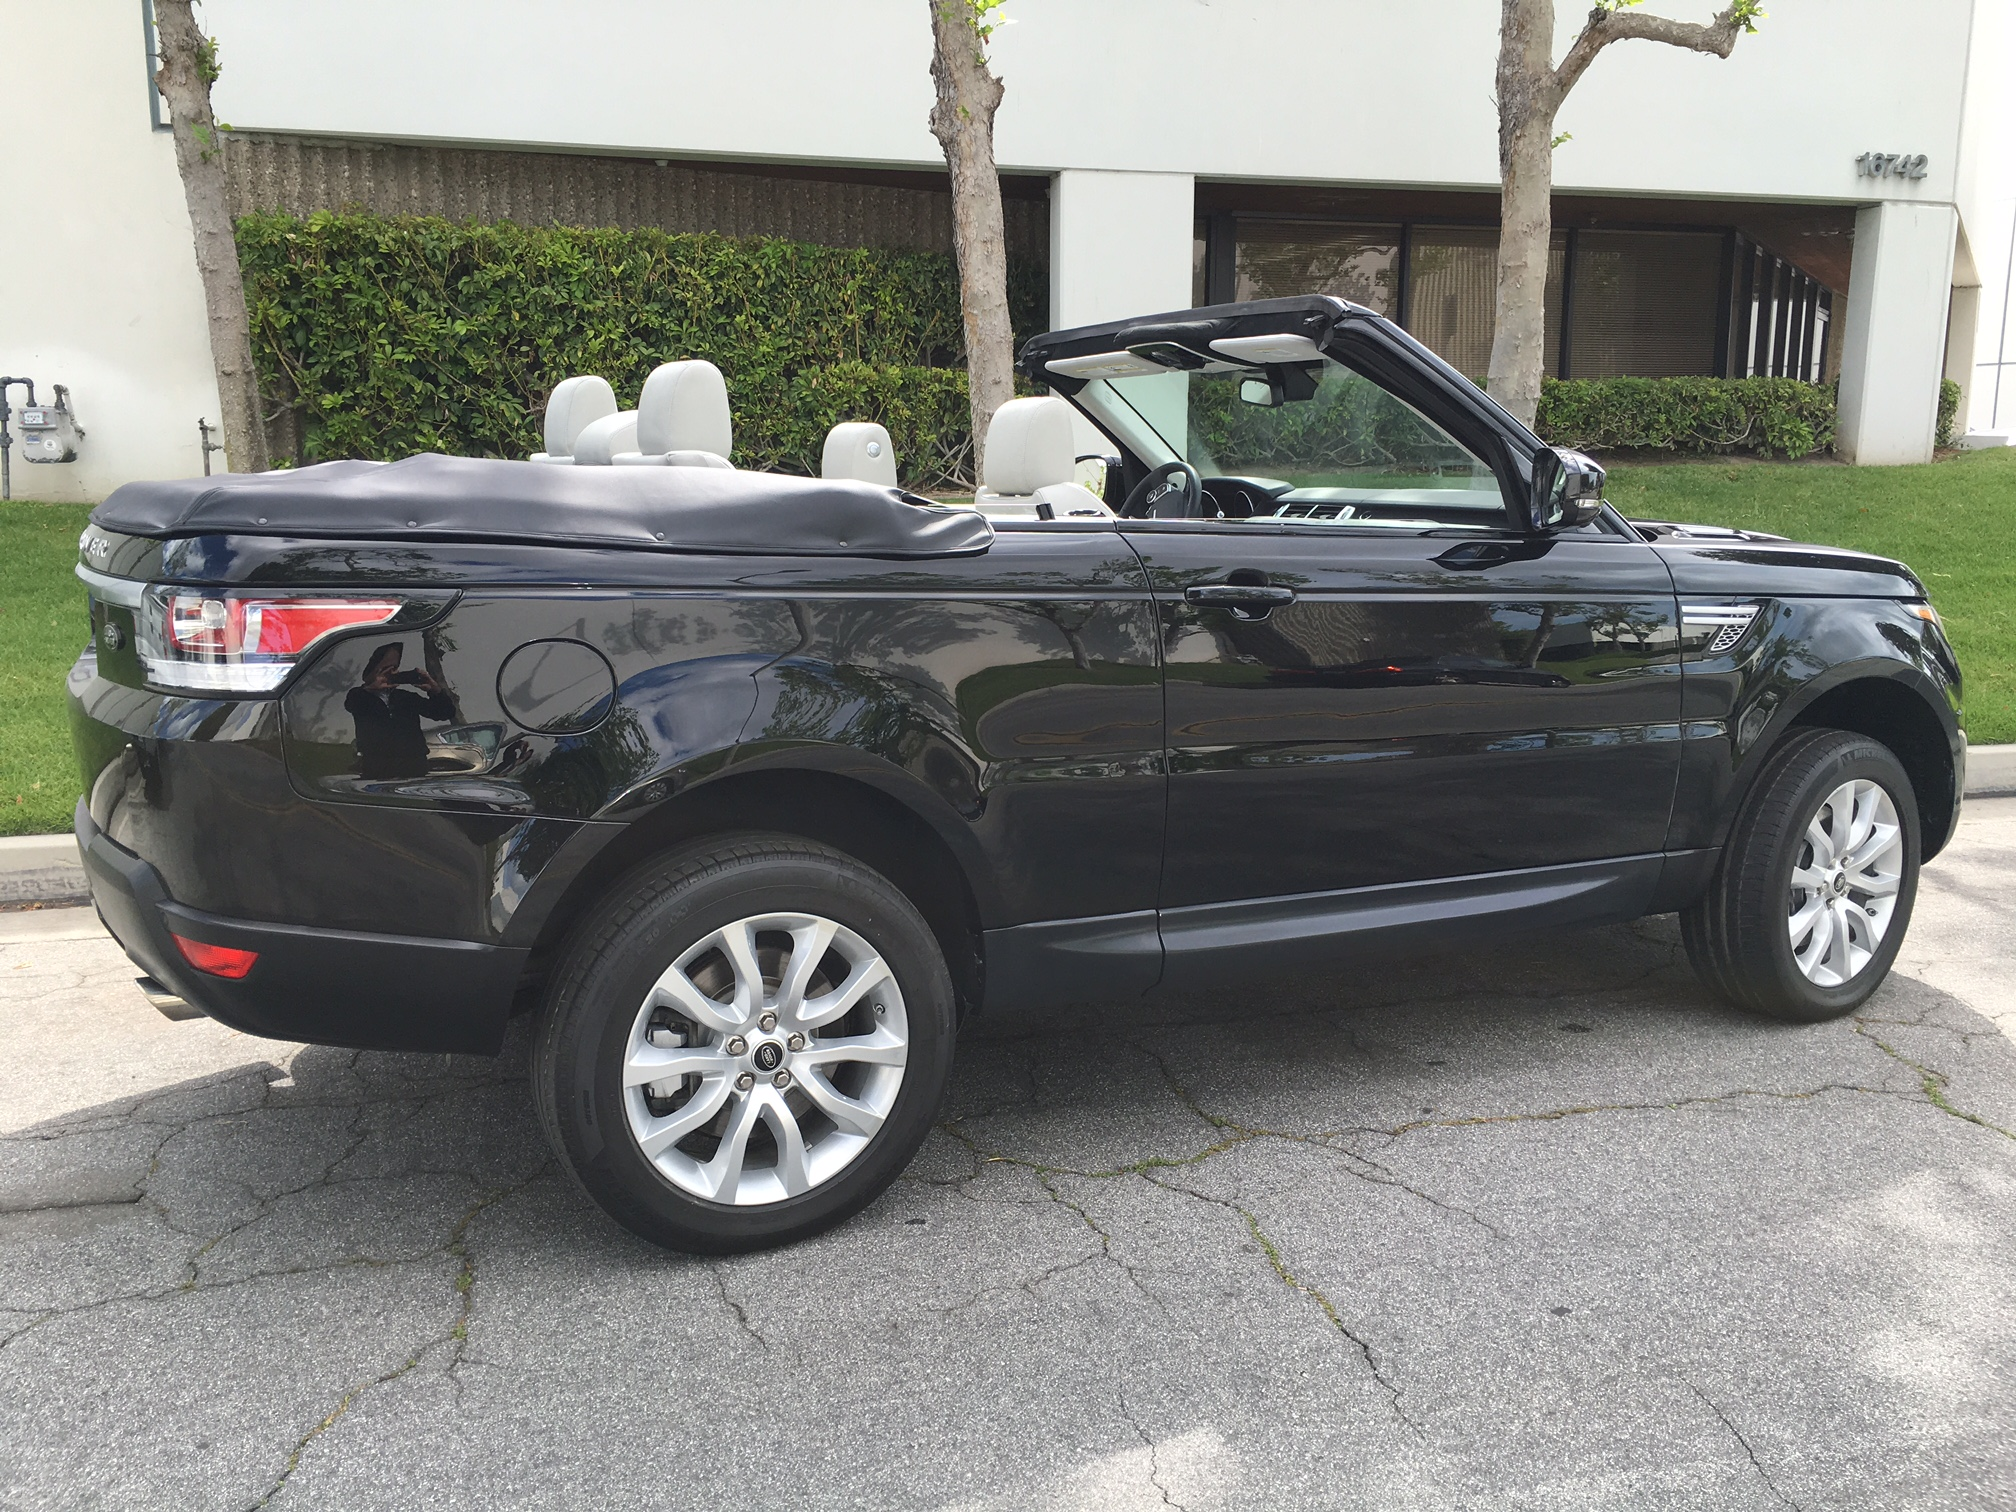 Range Rover 2 door Convertible – MEGA